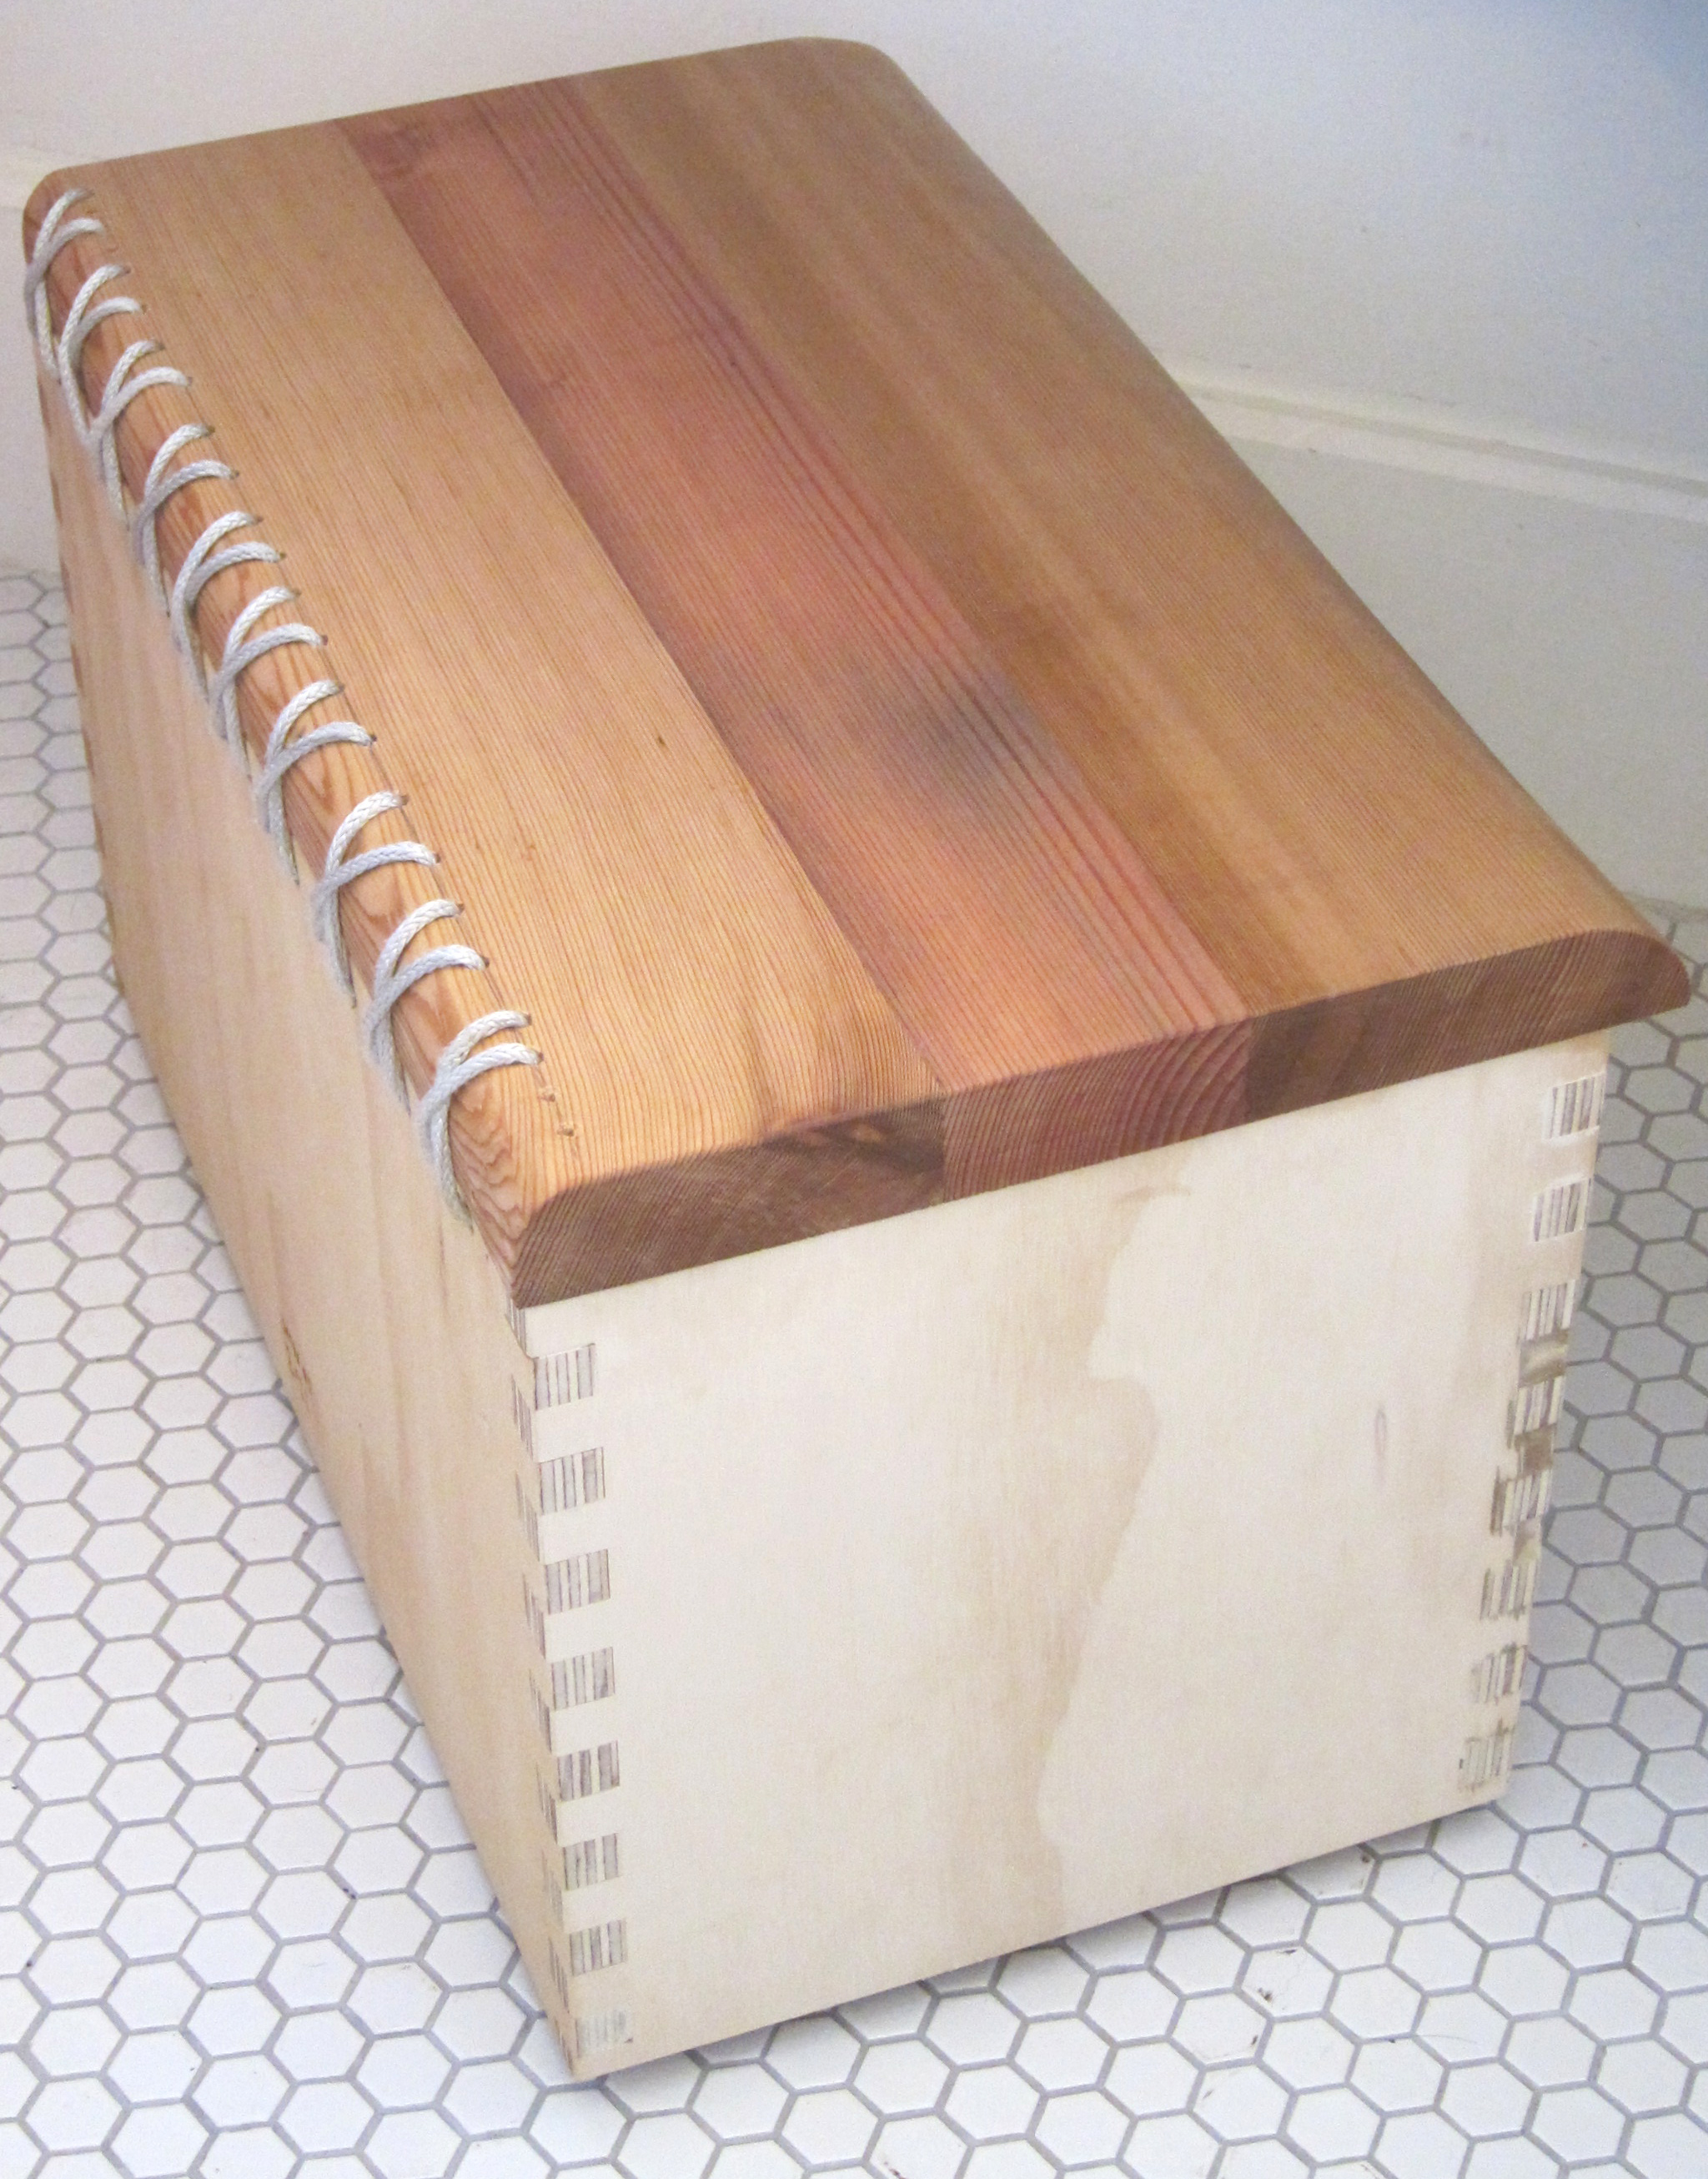 Diy Treasure Chest Plans Pine Wooden Pdf Wooden Projects